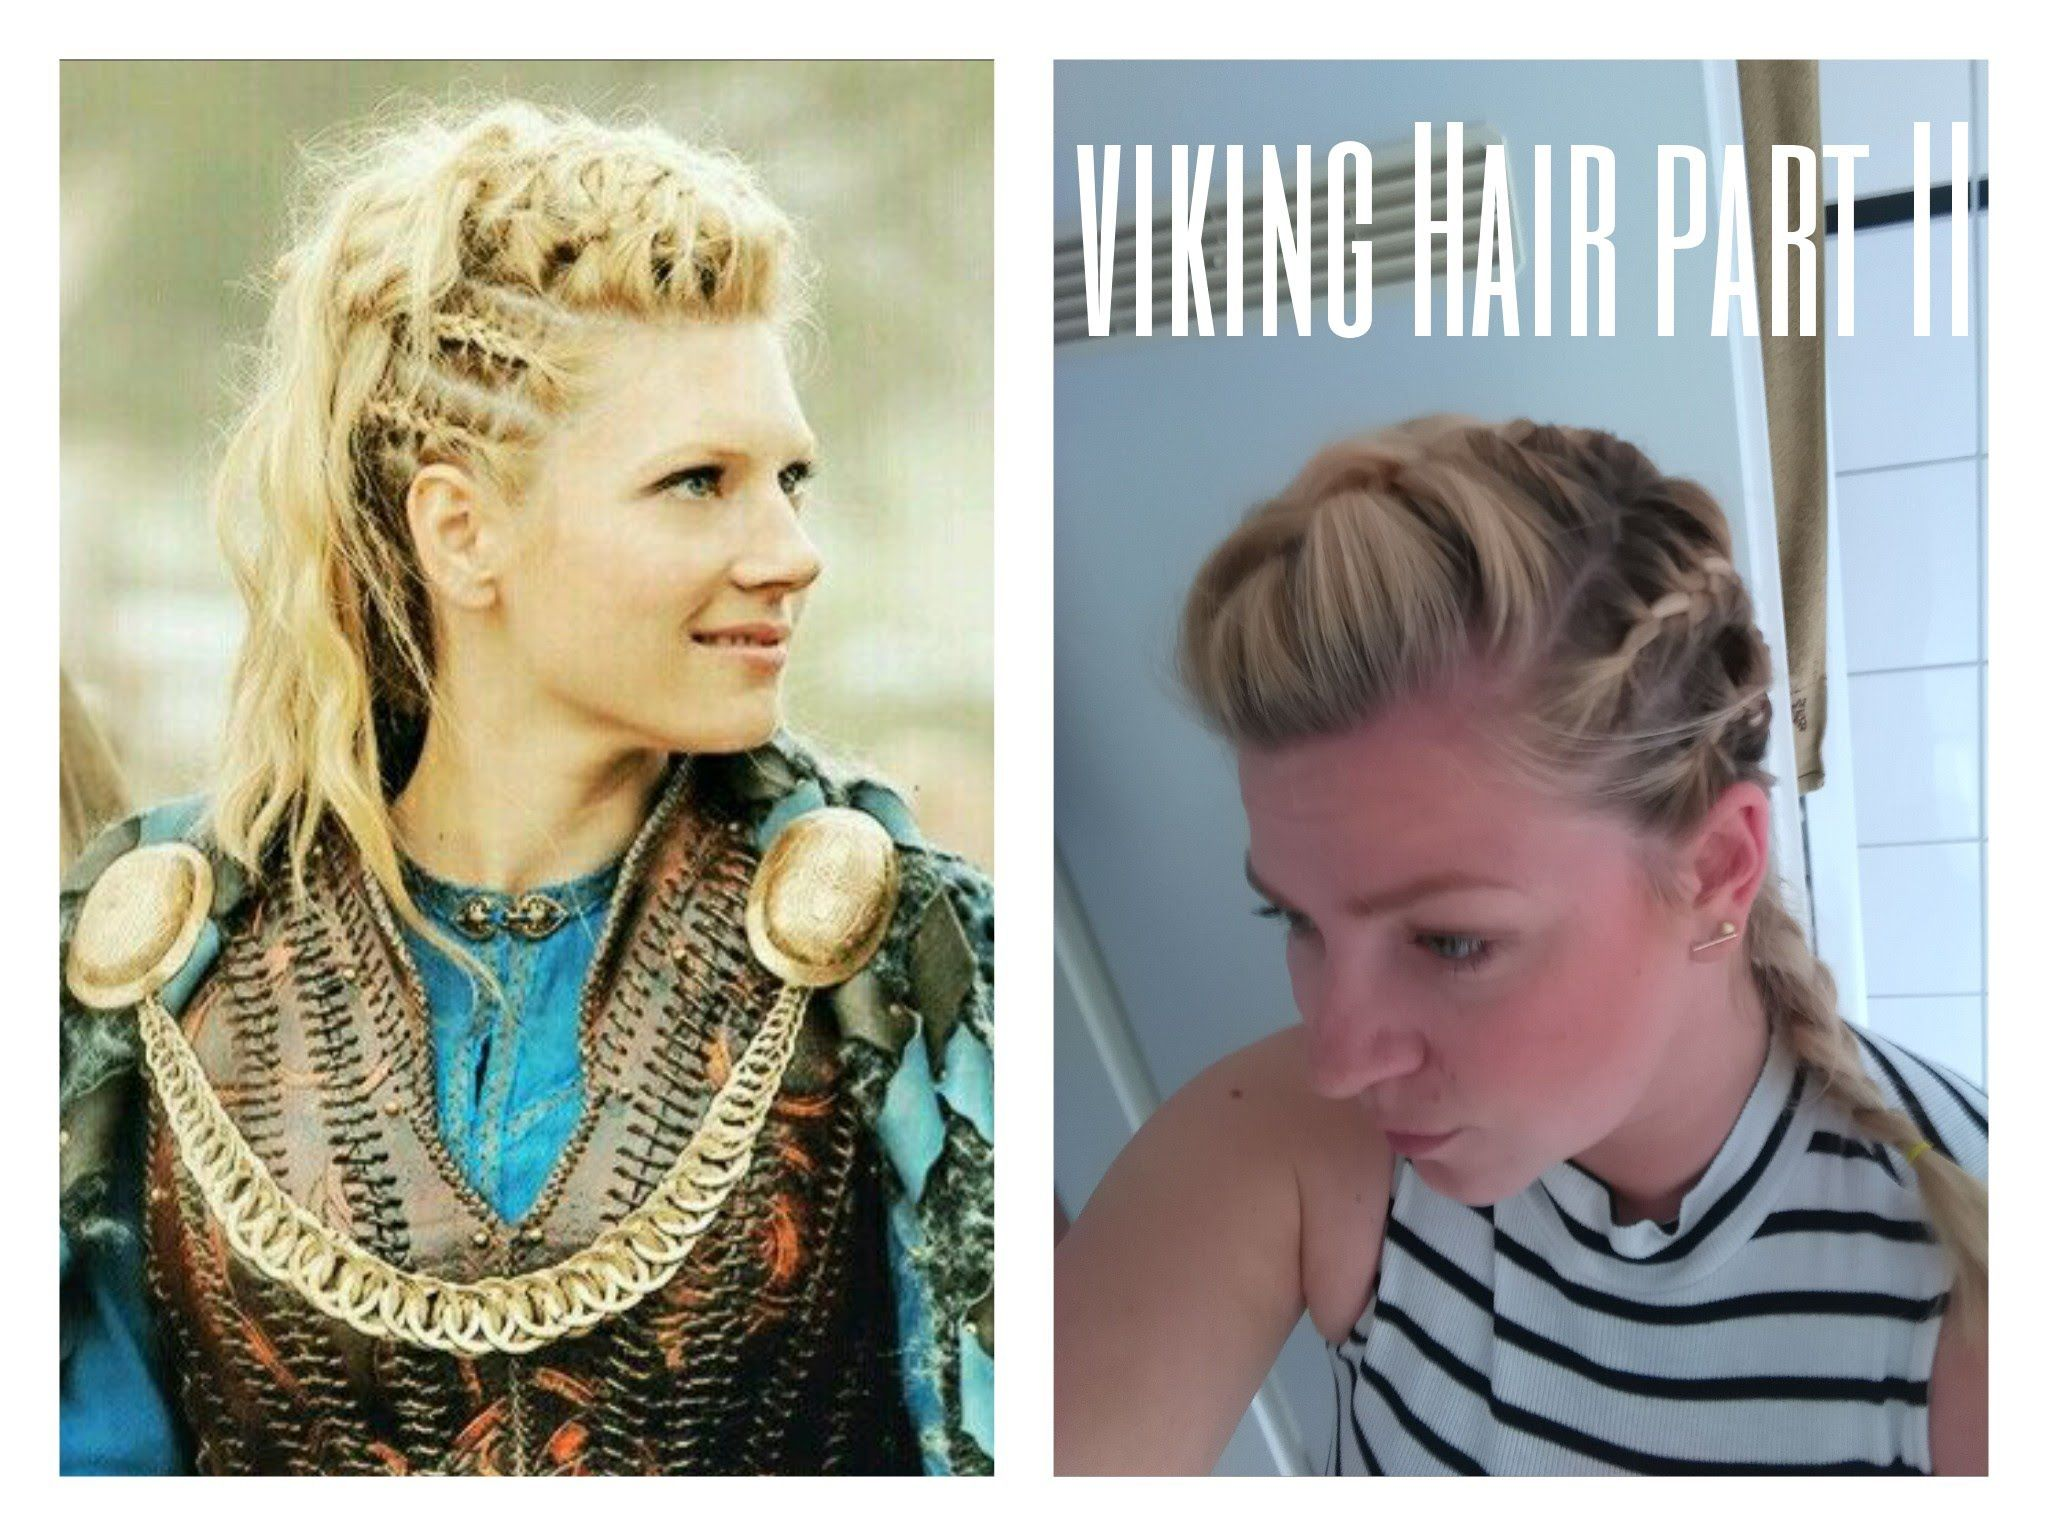 Frisuren Vikings - Frisurentrends  Viking hair, Pretty hairstyles